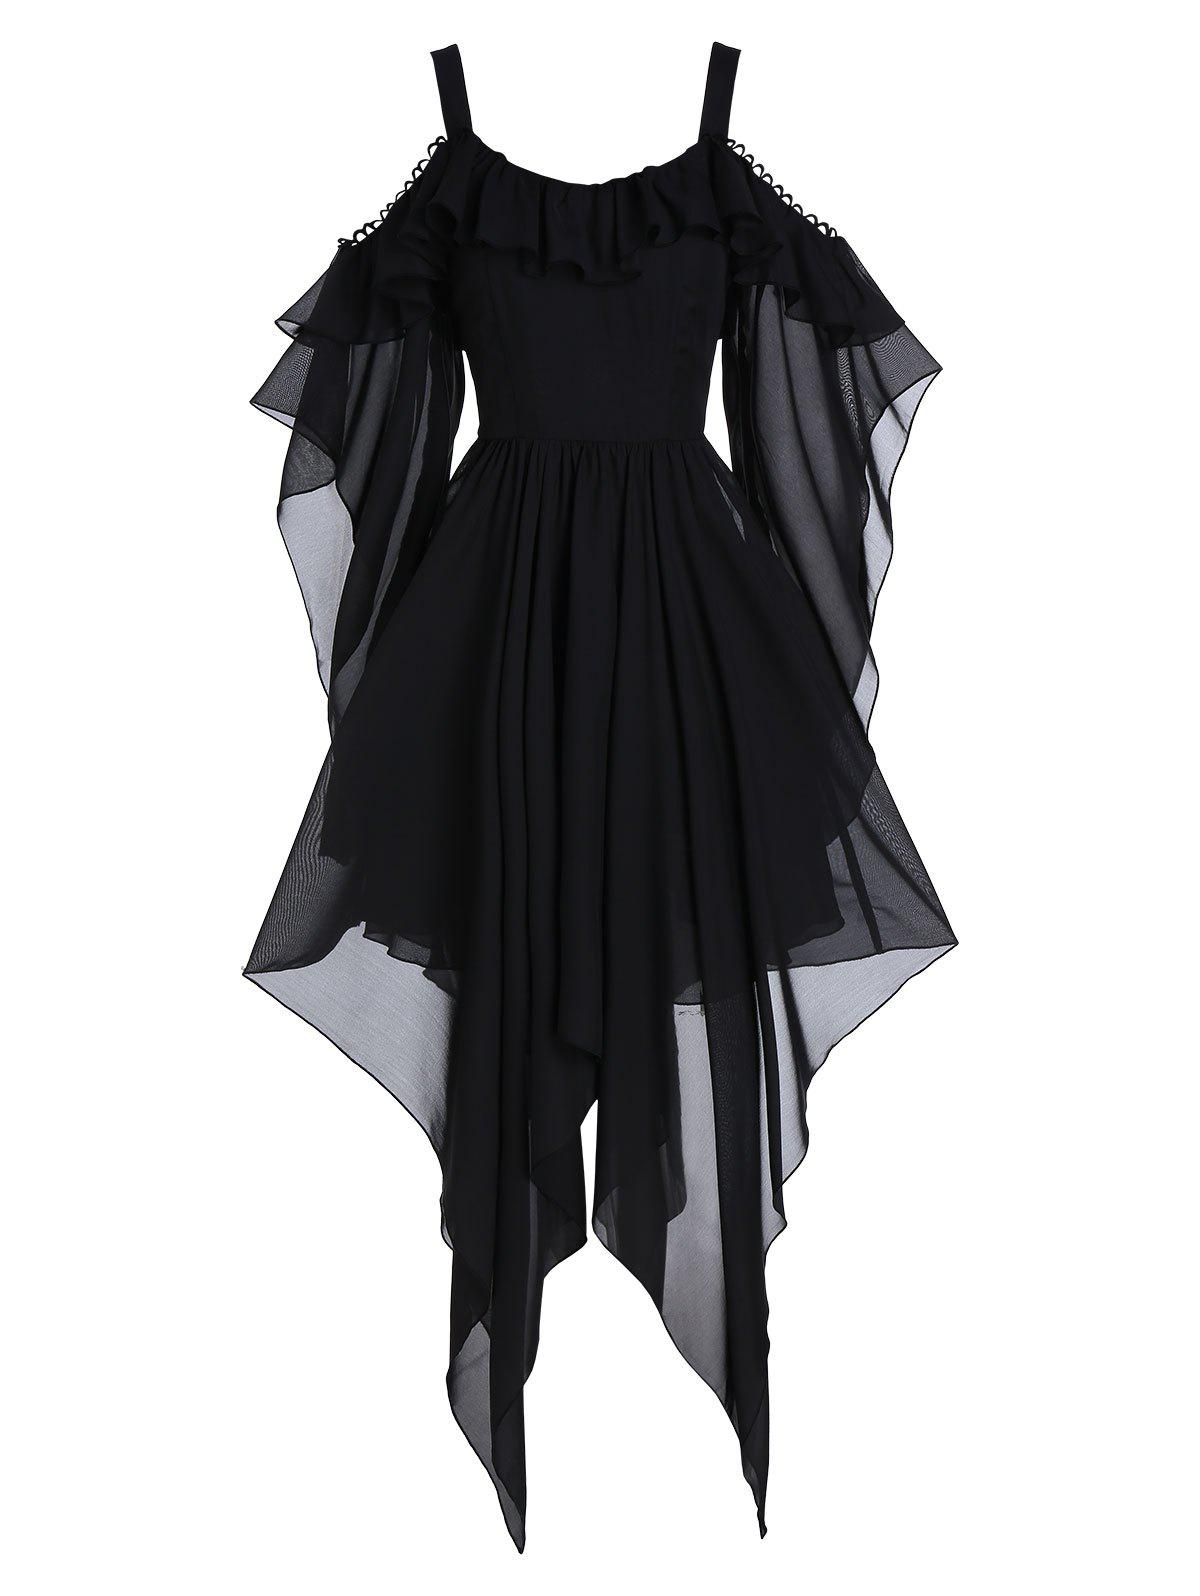 Store Asymmetrical Picot Trim Open Shoulder Flounce Gothic Dress